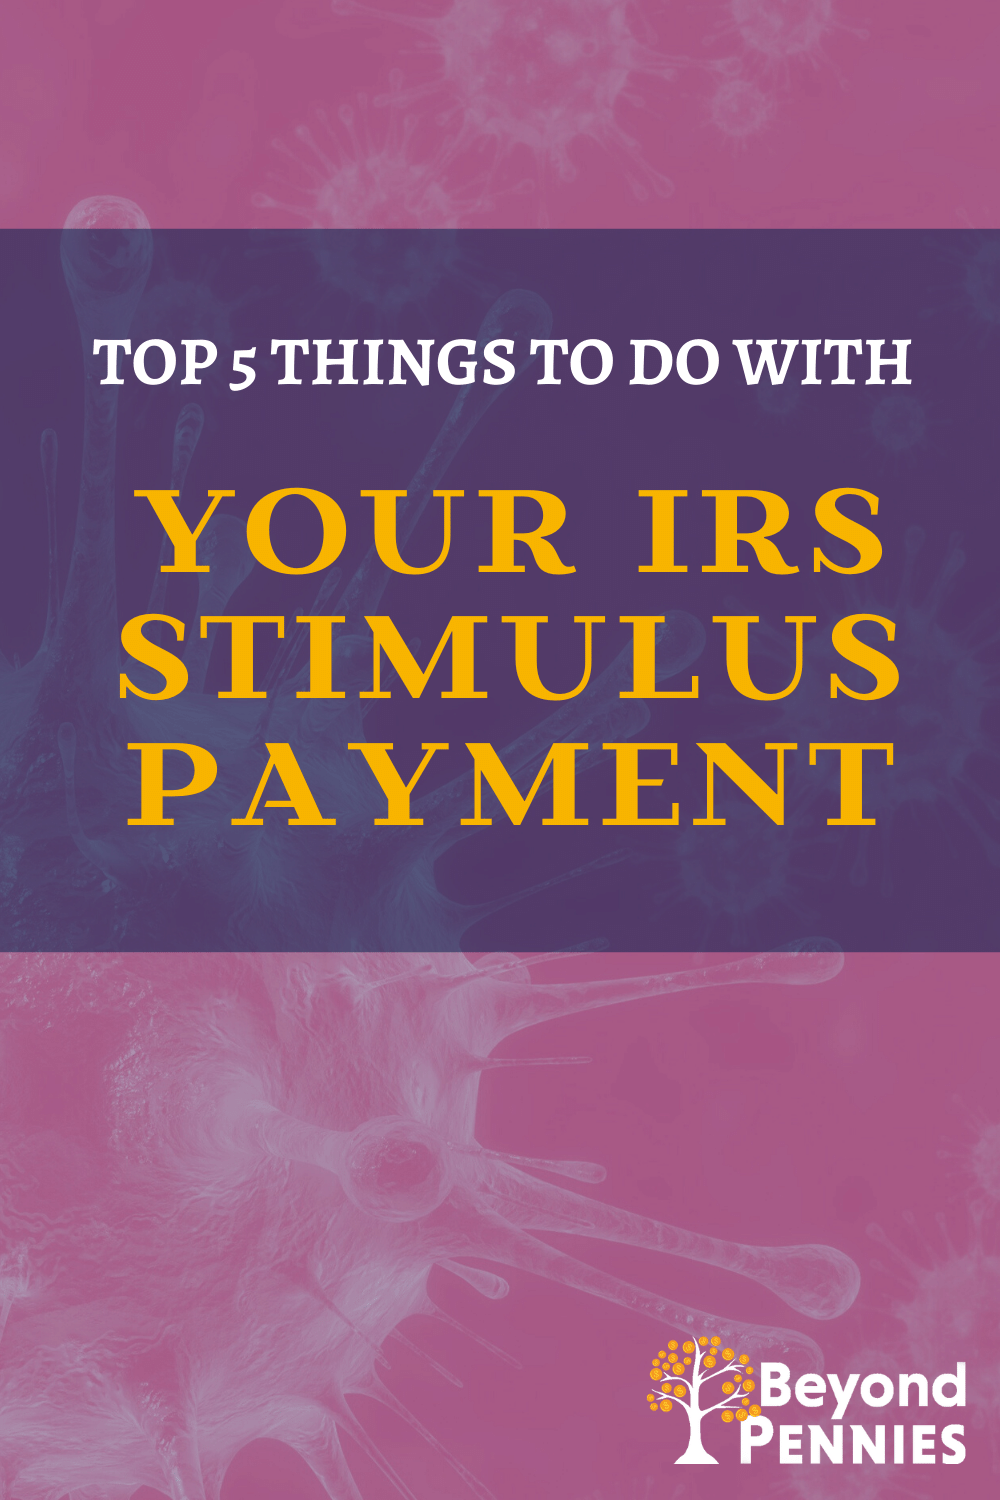 Top 5 Uses for Your IRS Stimulus Payment